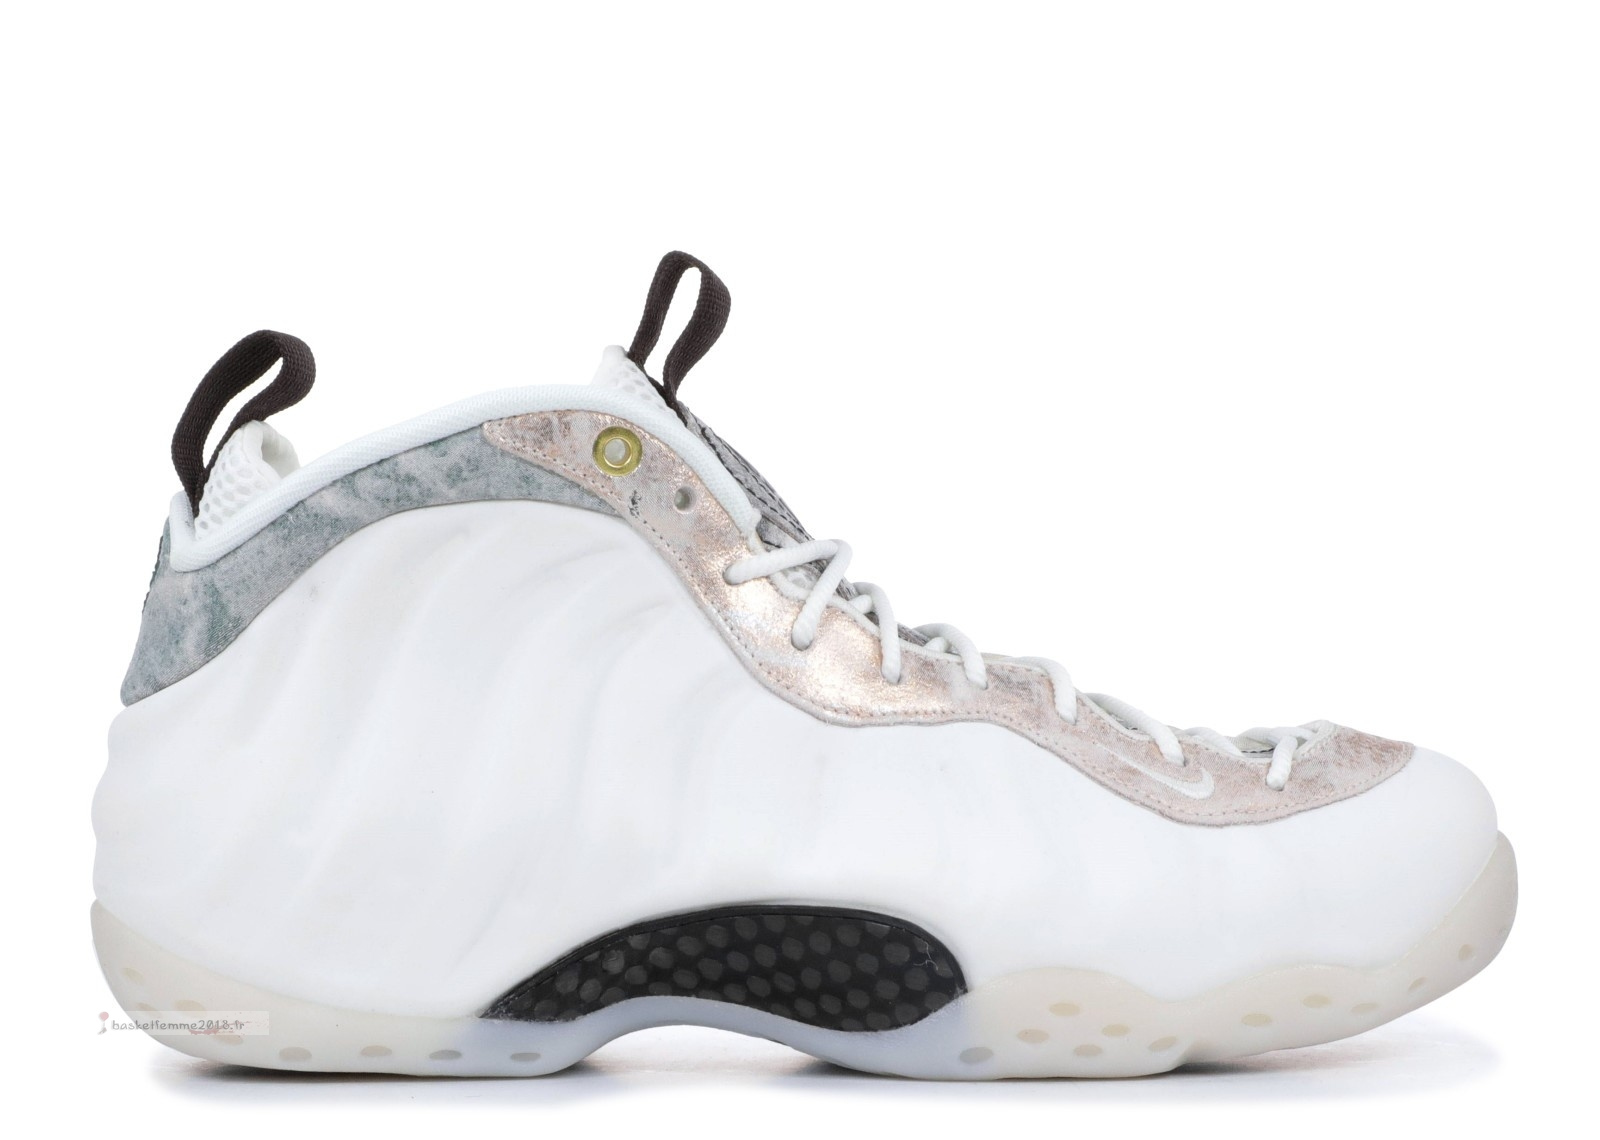 Nike Air Foamposite One Femme Blanc (aa3963-101) Chaussure de Basket